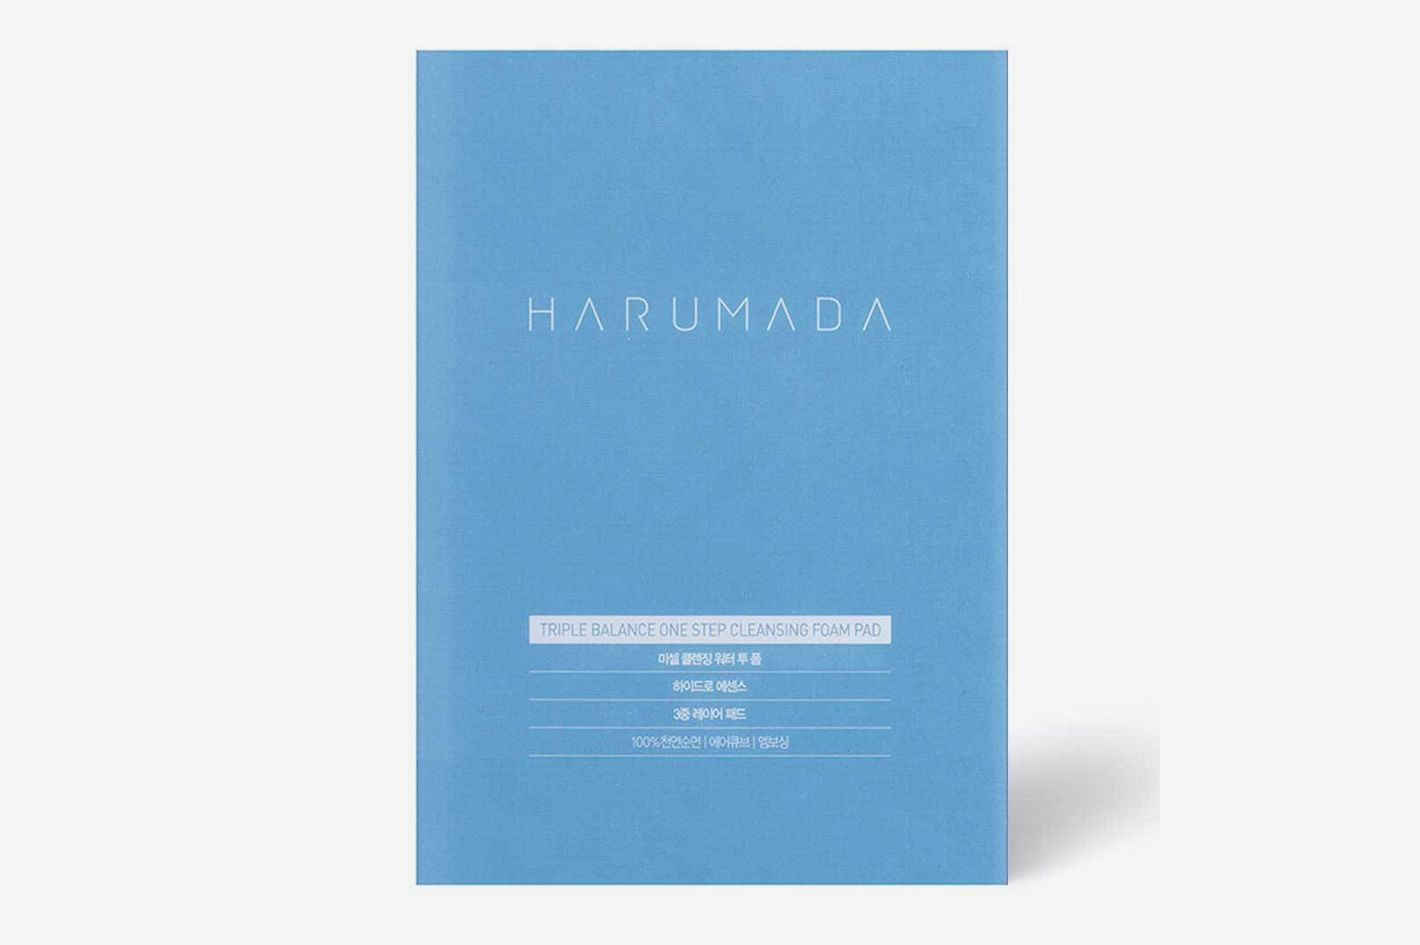 Haramuda Triple Balancing One-Step Cleansing Foam Pad